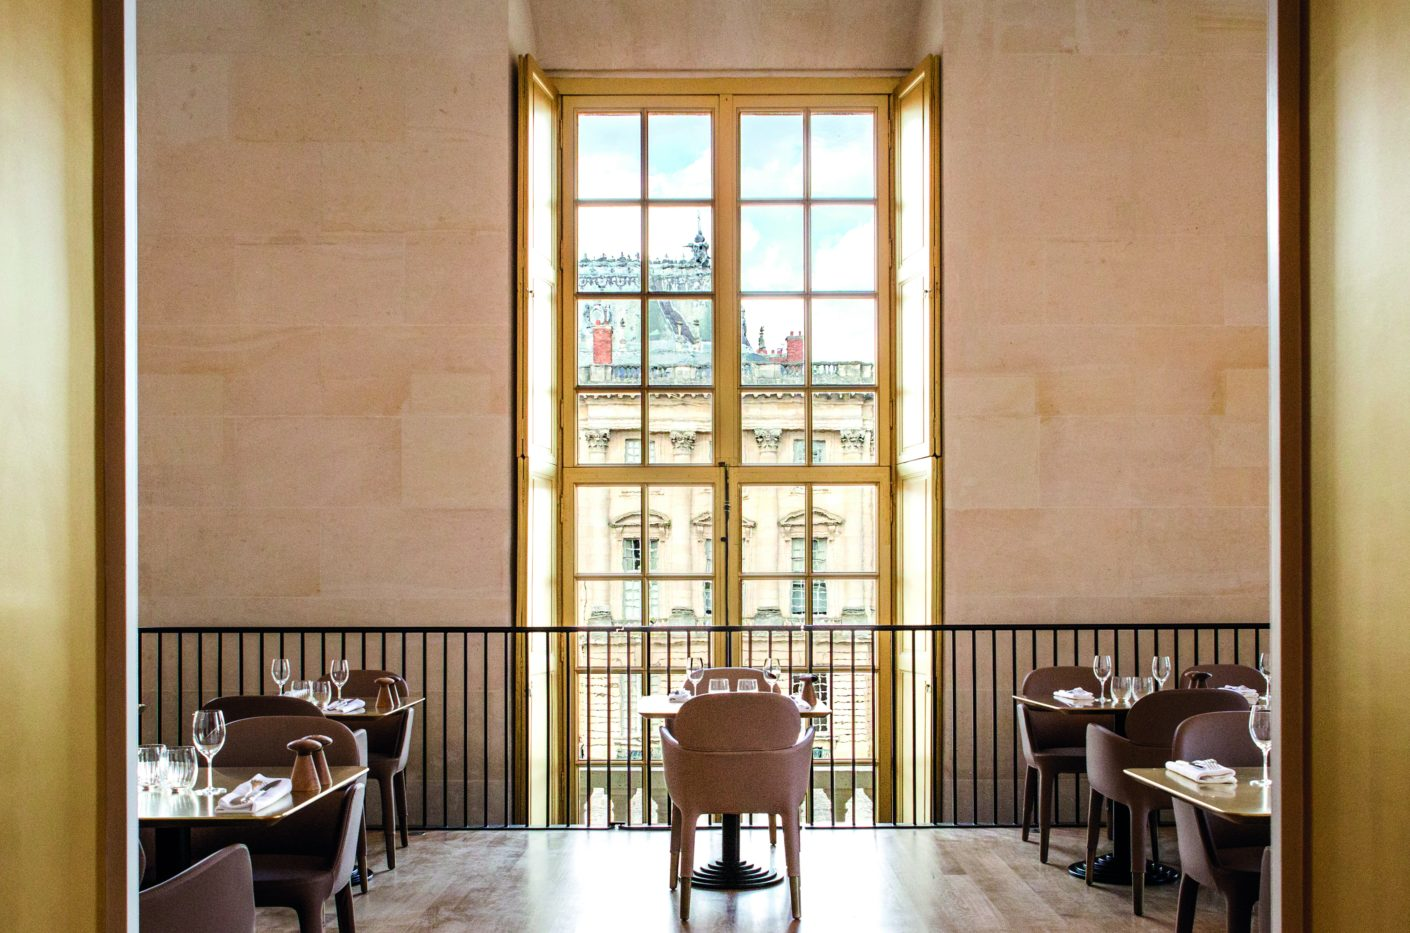 """The award-winning star chef Alain Ducasse runs the Café """"Ore"""" on the first floor of the Pavilion Dufour in one of the wings of the palace in Versailles"""